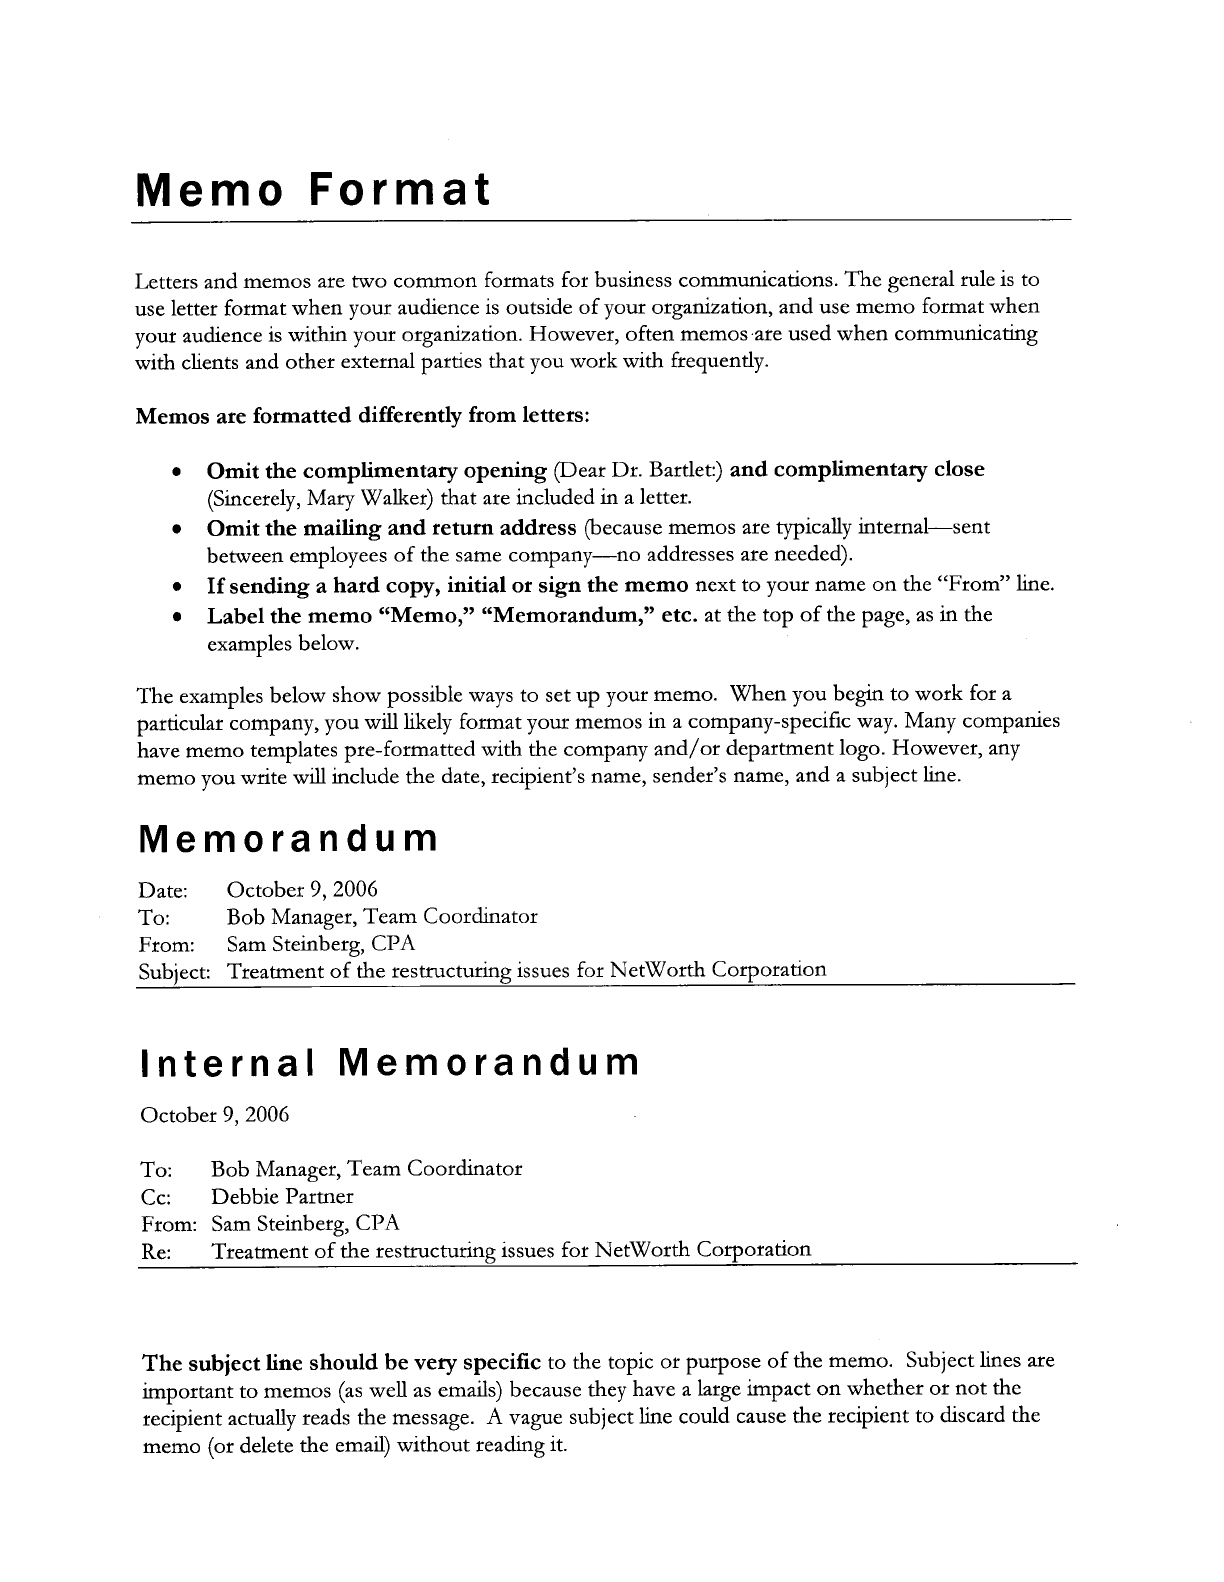 Business memo template solarfm business memo template altavistaventures Gallery